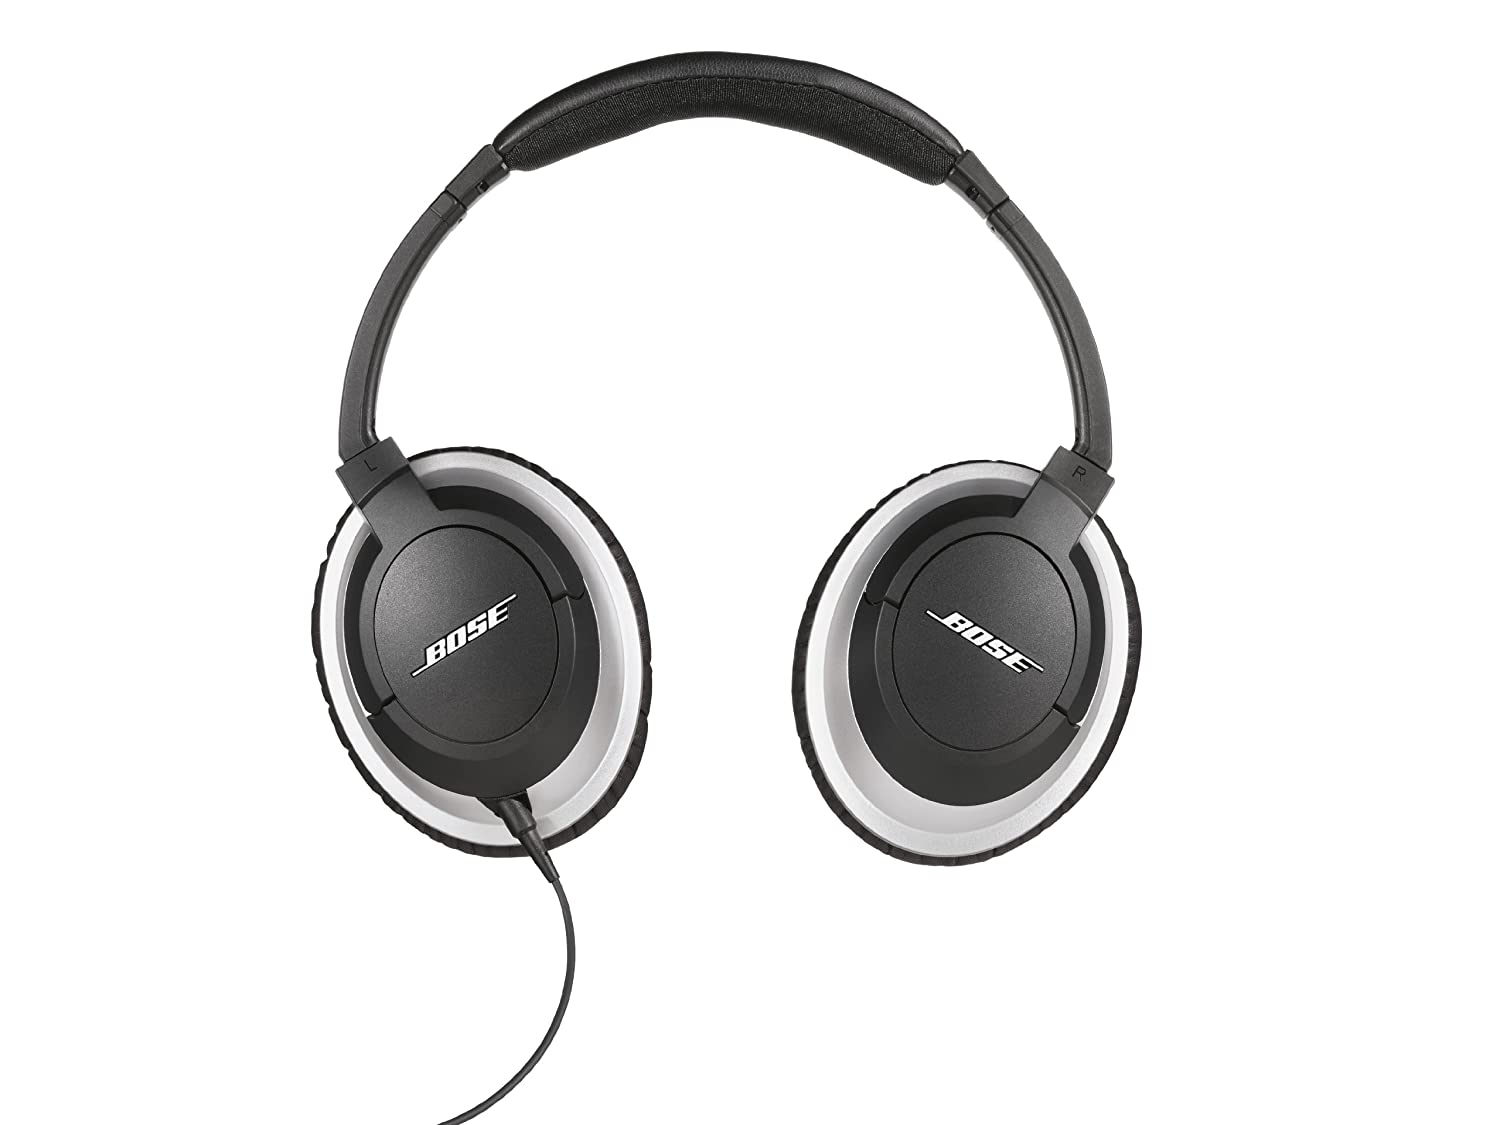 Amazon.com: Bose AE2 Around-Ear Audio Headphones, Black: Home Audio ...